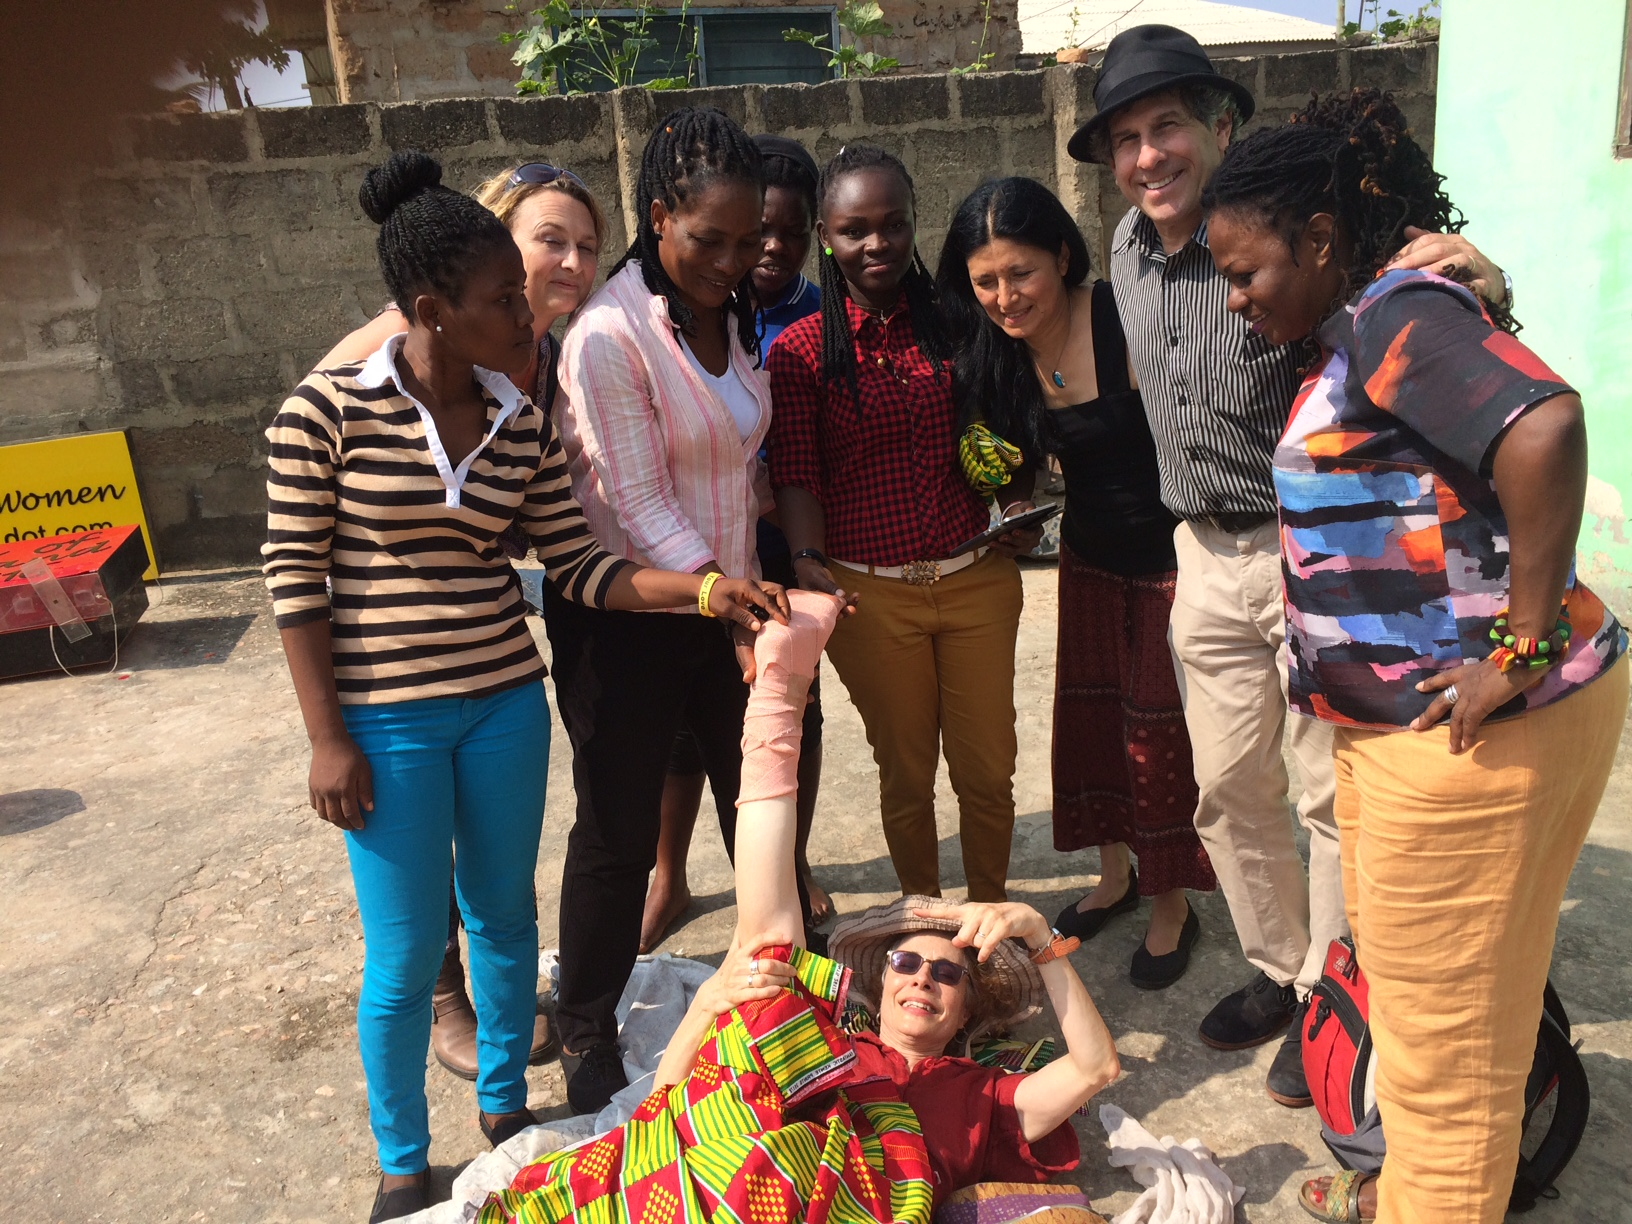 From left: Ruth, Cari Ann, Eva, Eunice, Abigail, Valerie, Andy, Della, Wendy on ground Photo by Sulley Imoro